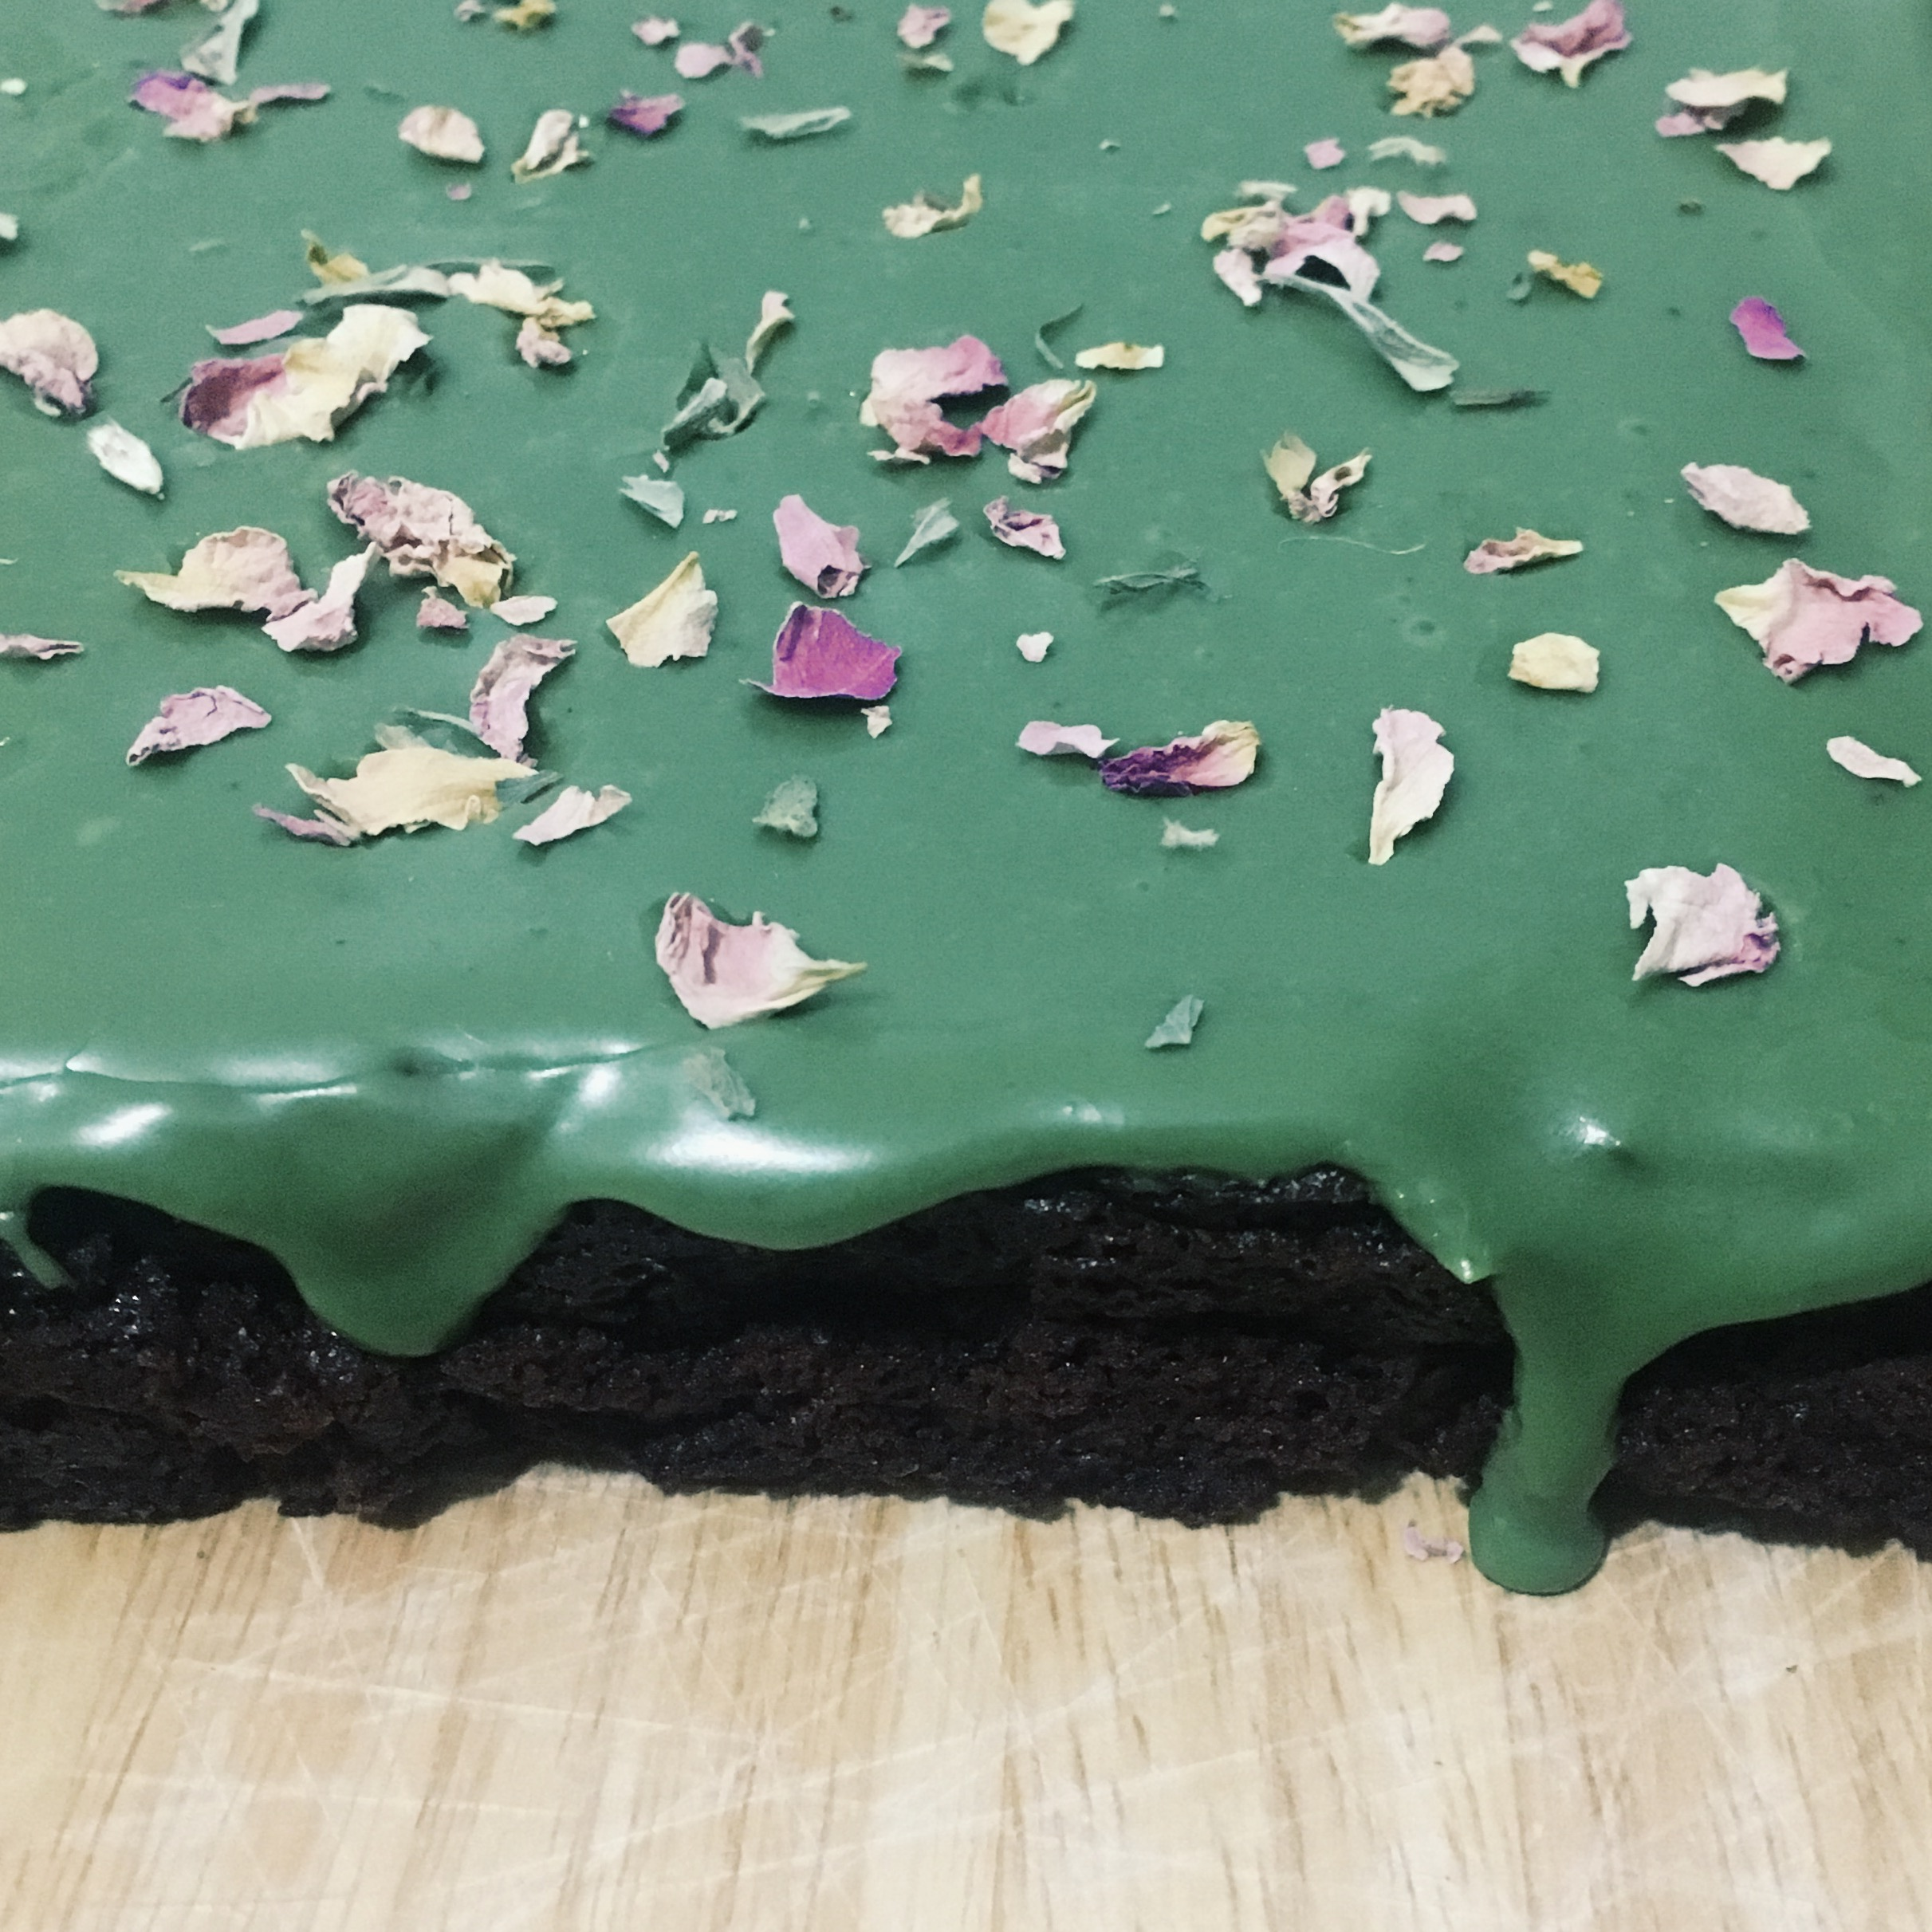 brownies from scratch with matcha icing and rose petals